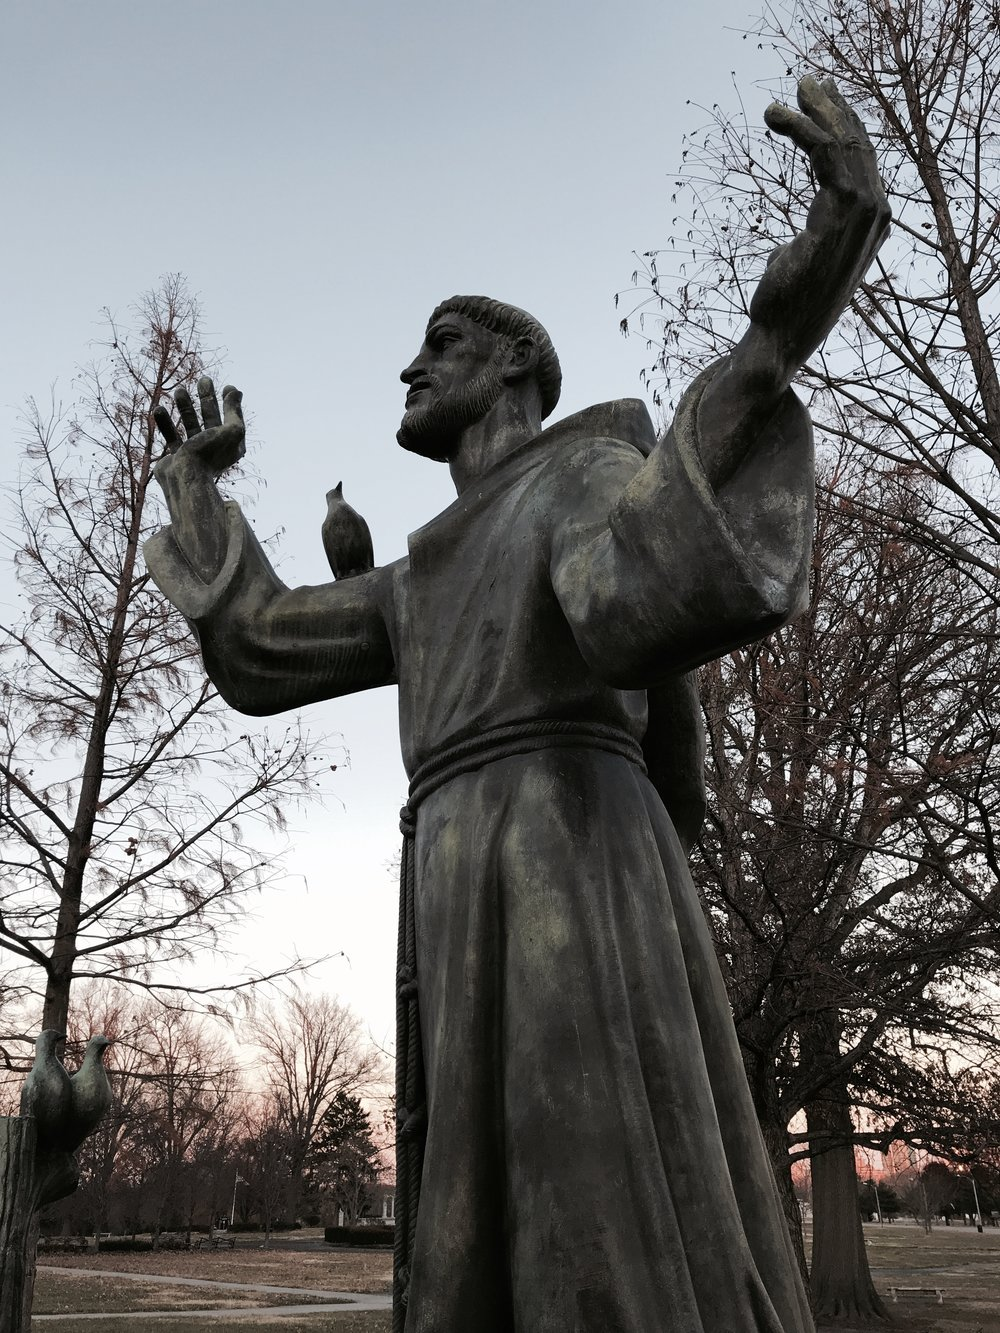 Statue of St. Francis. Forest Park, St. Louis, Mo. December 2017. Photo by Rachel Lindsey.